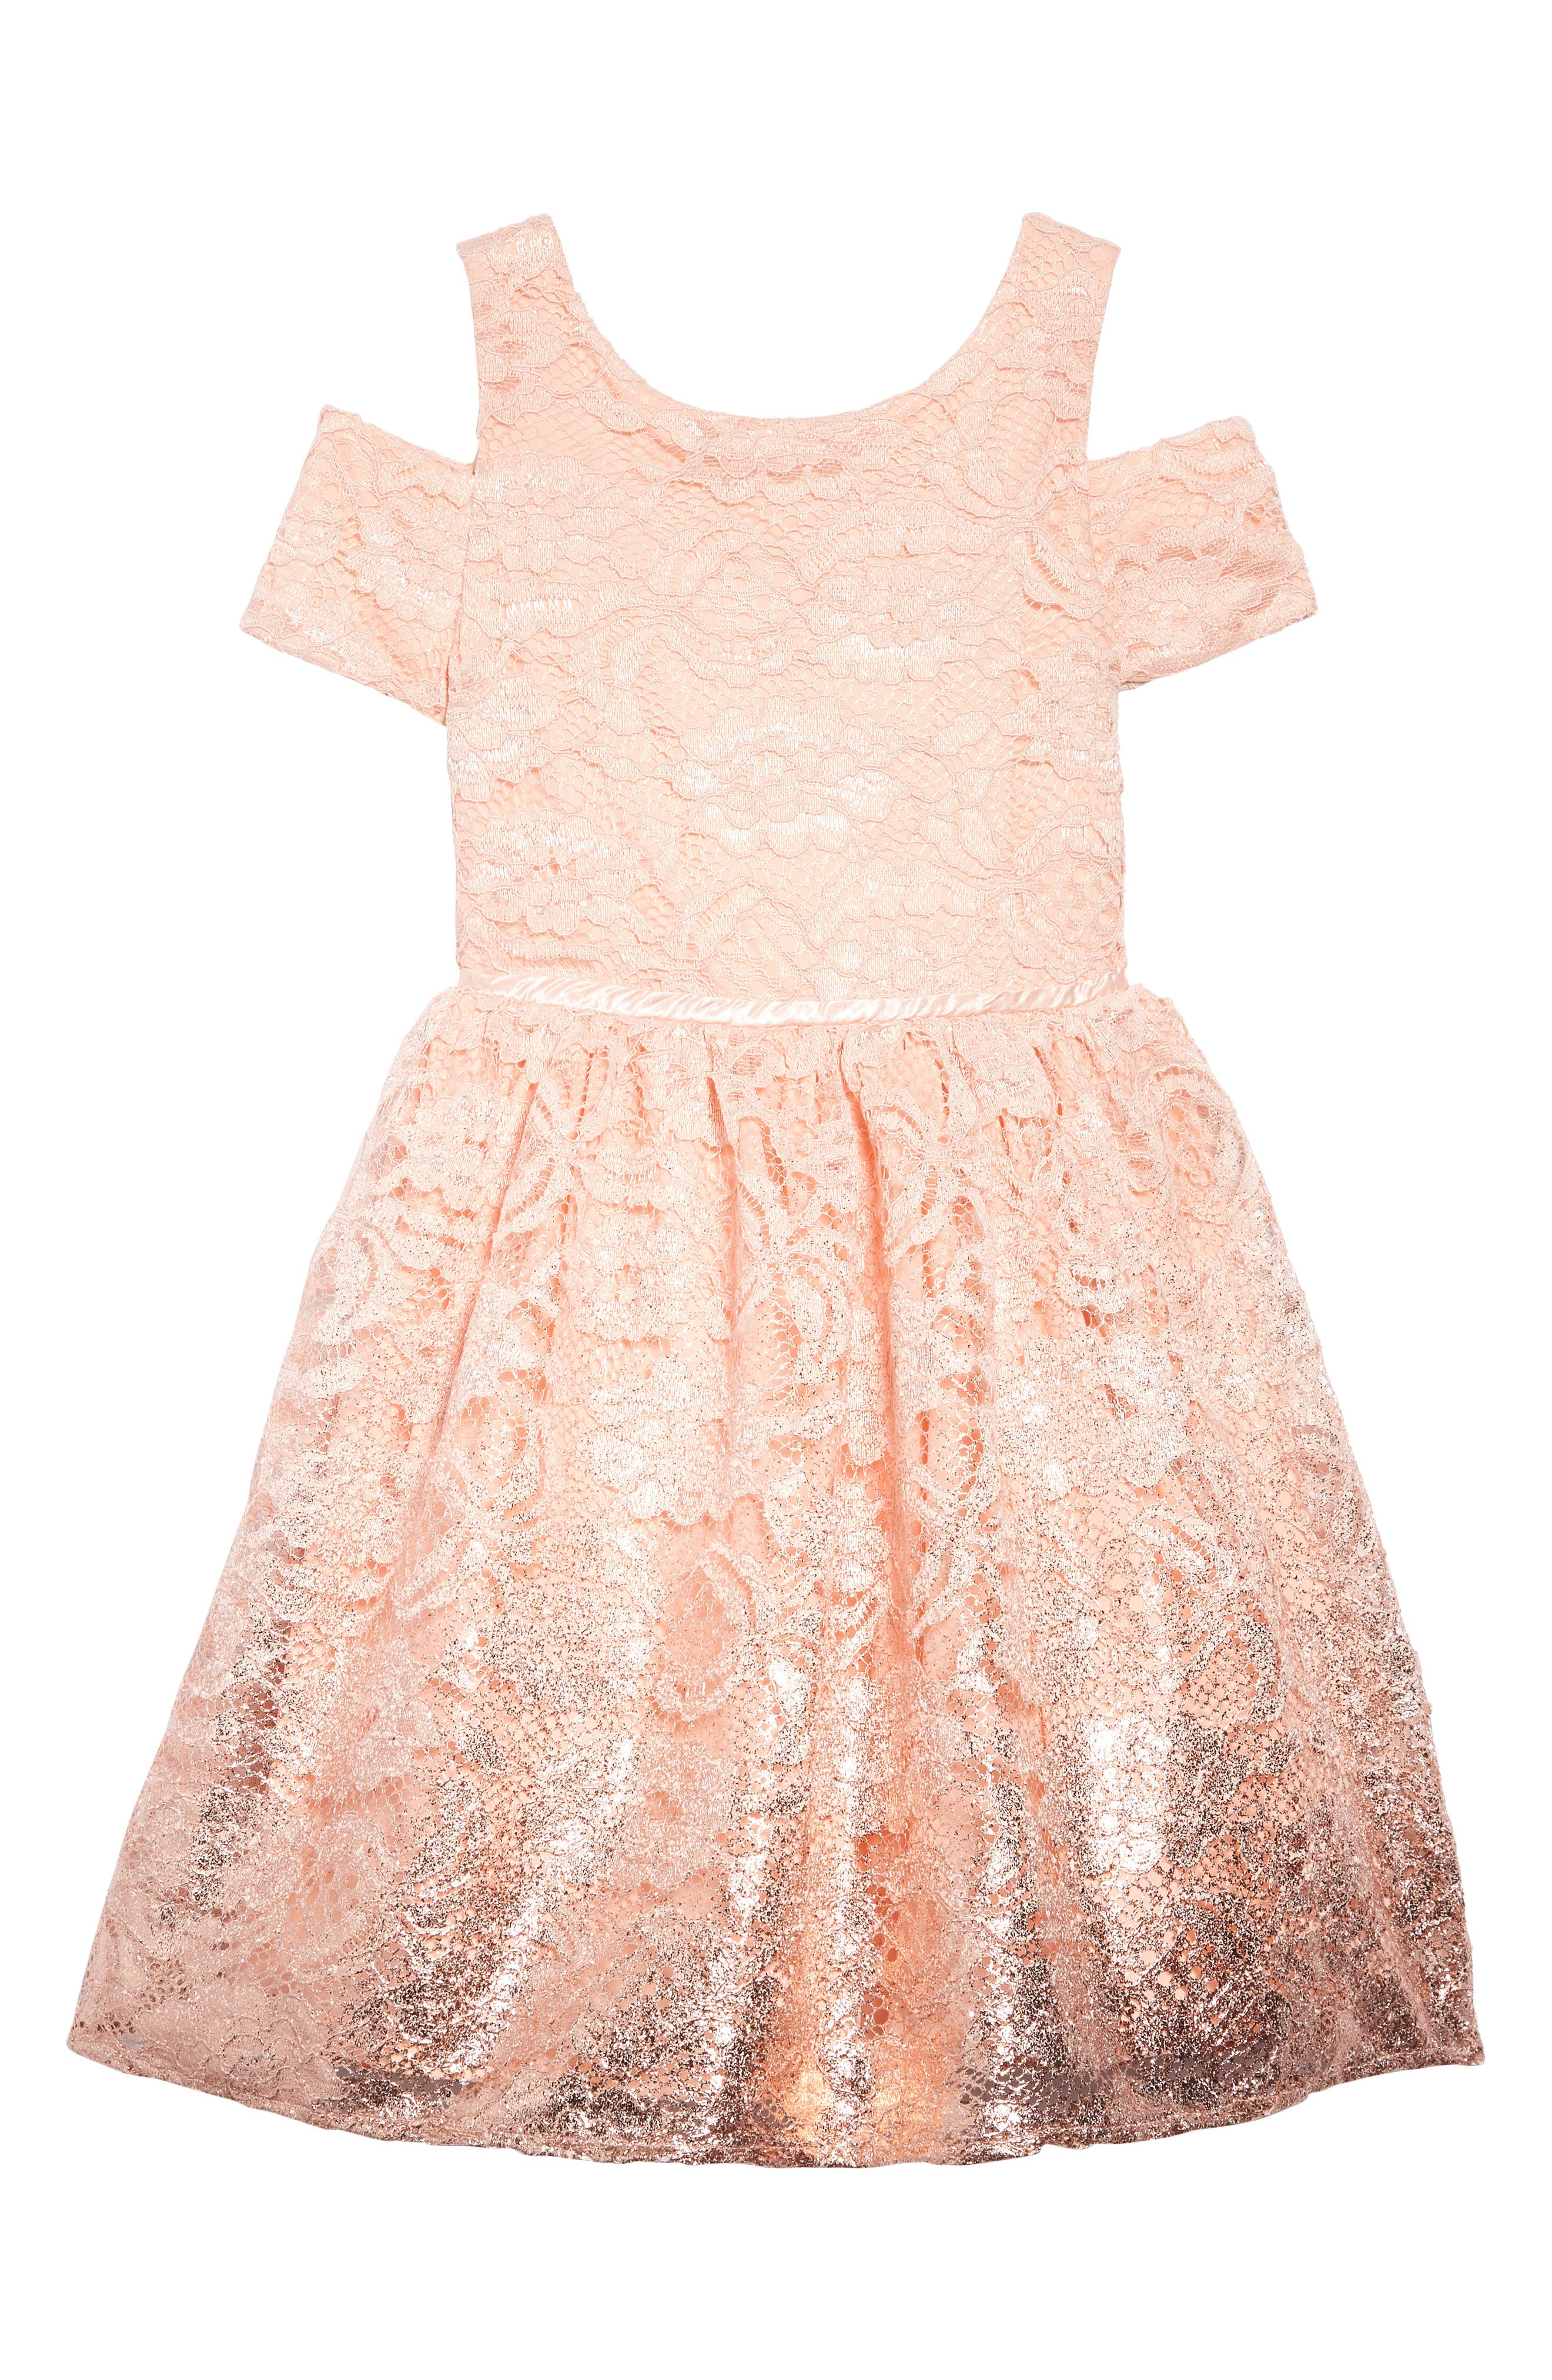 BLUSH BY US ANGELS Foiled Lace Dress, Main, color, BLUSH